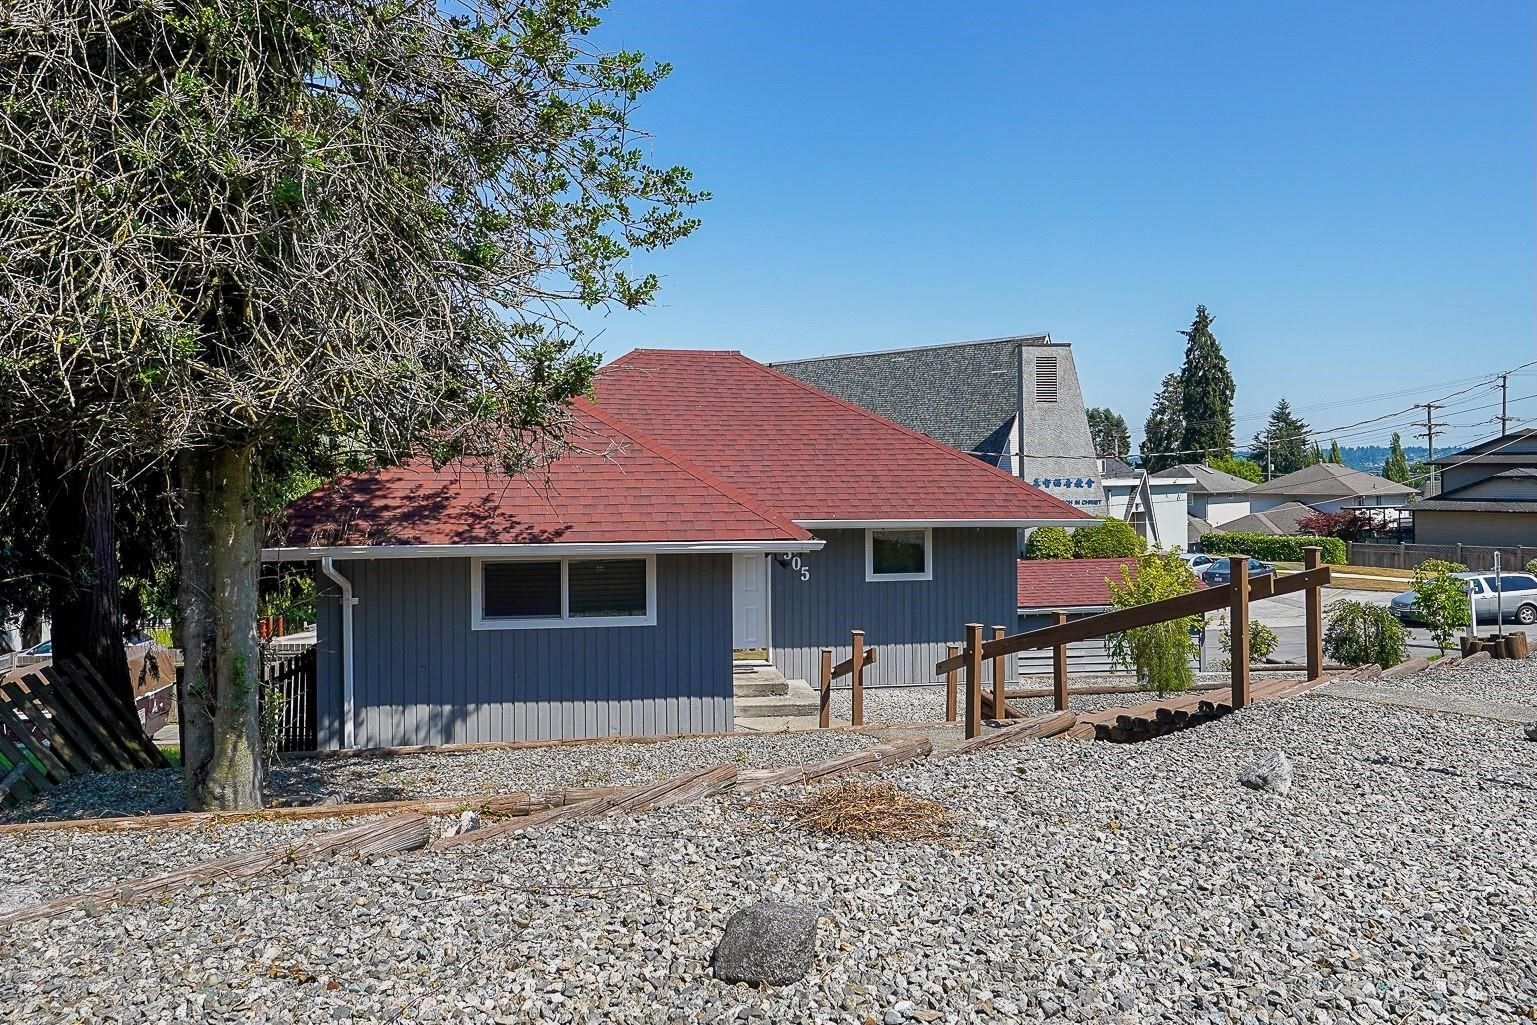 """Main Photo: 505 BRAID Street in New Westminster: The Heights NW House for sale in """"THE HEIGHTS"""" : MLS®# R2611434"""